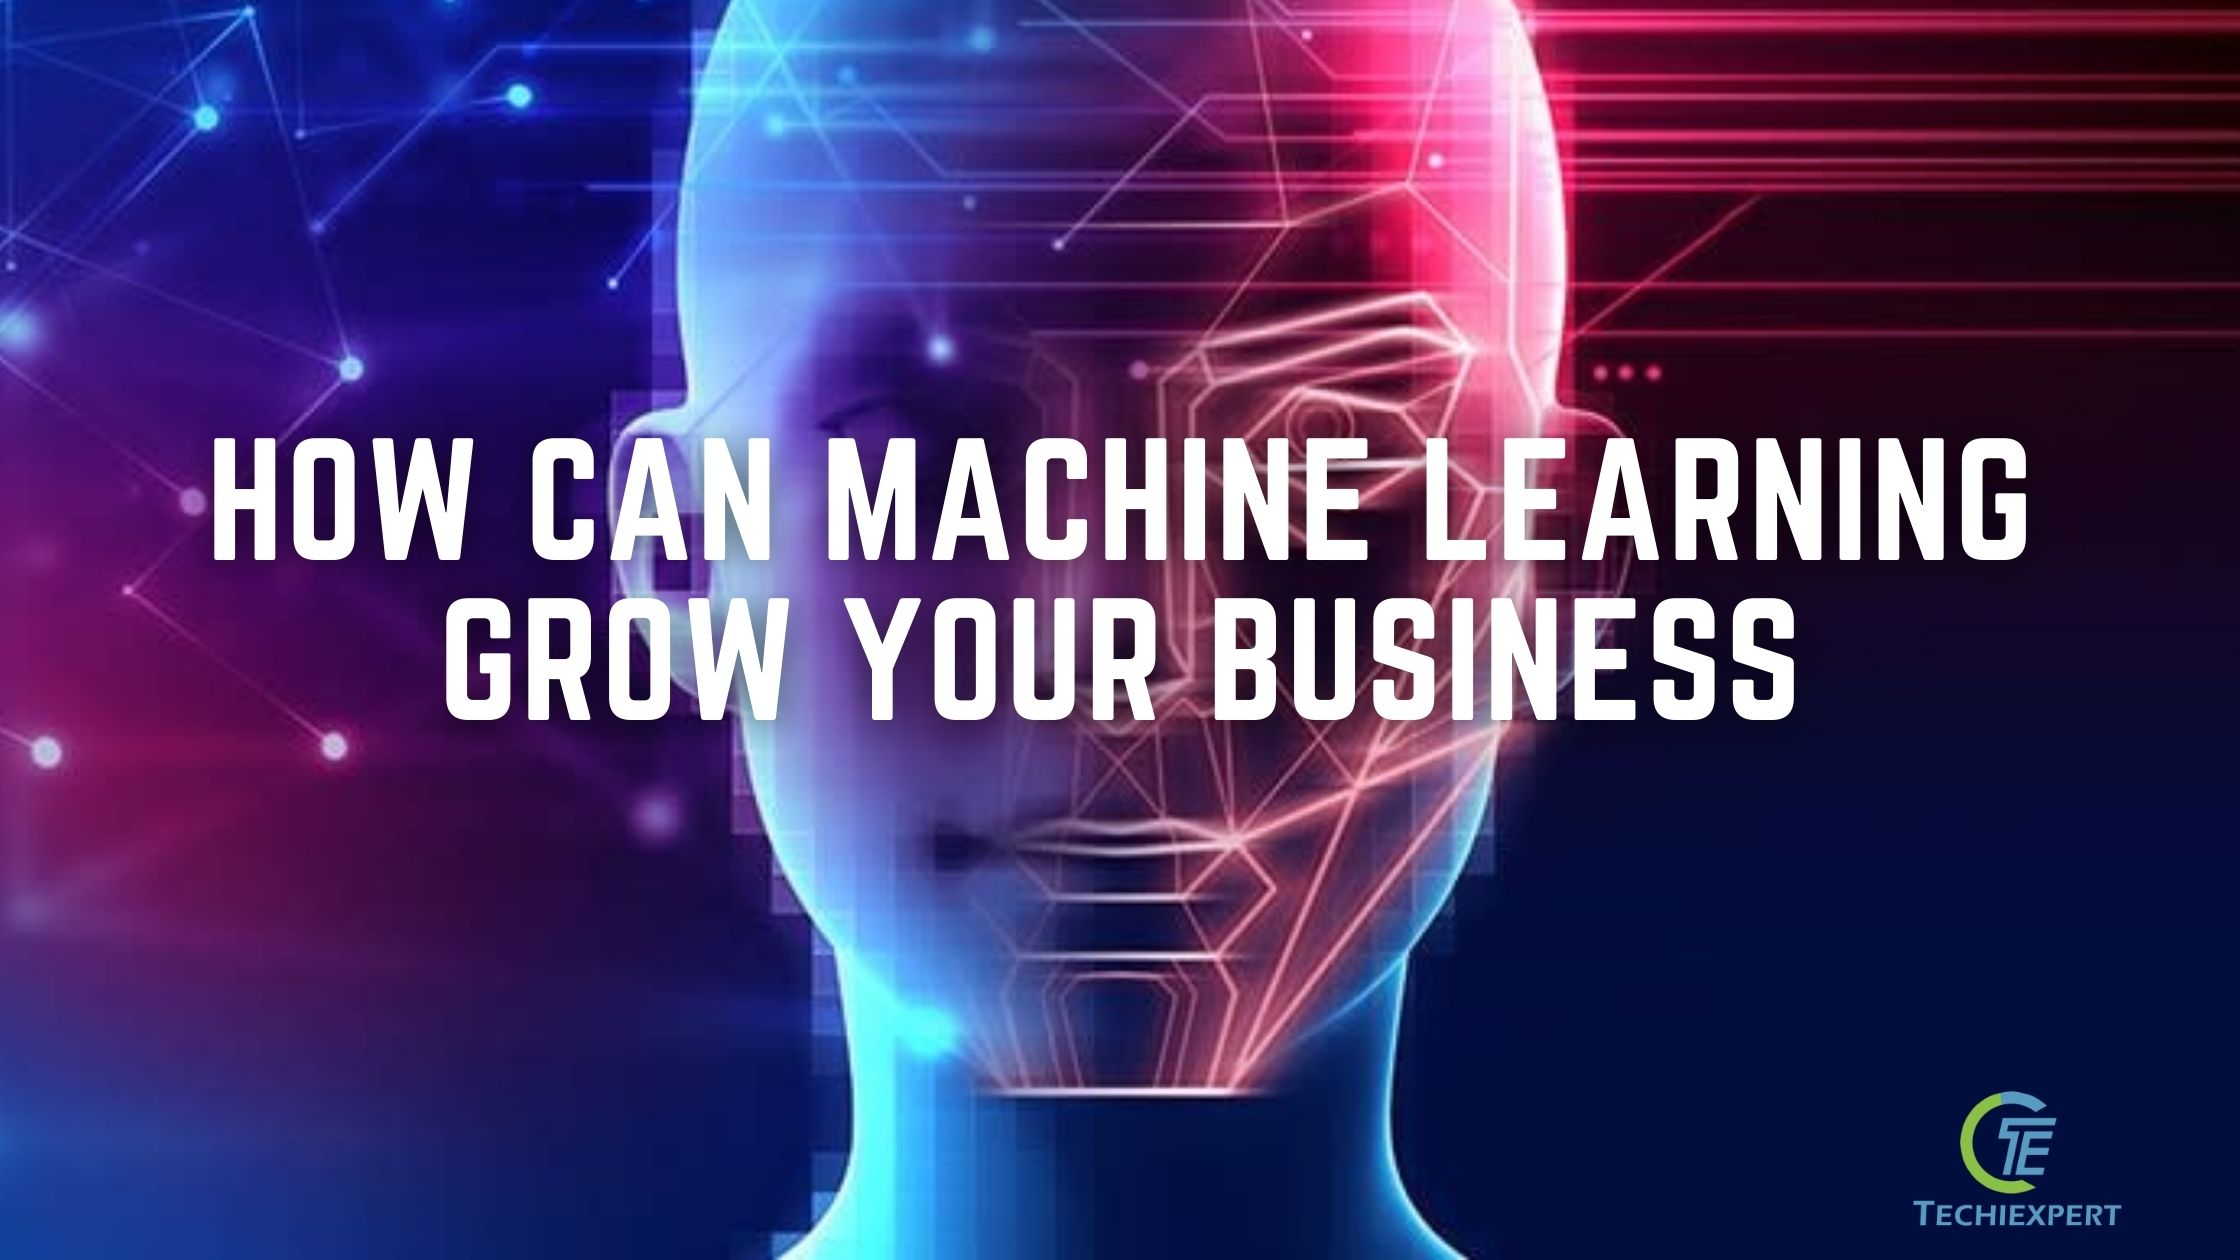 How can machine learning grow your business